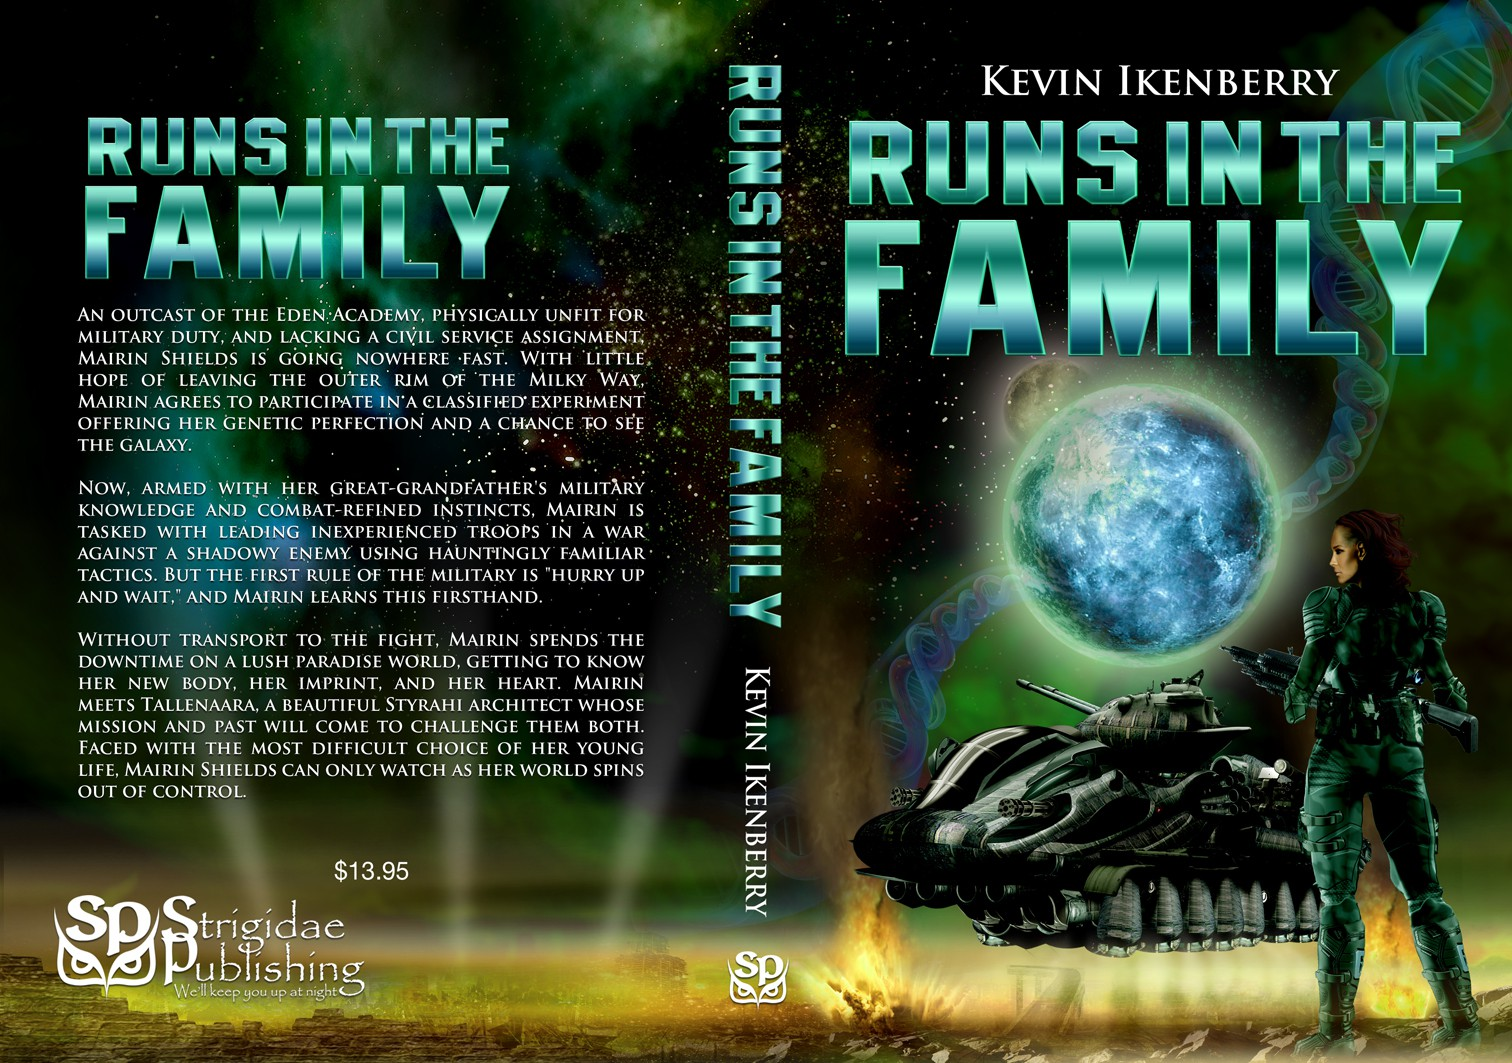 Create a military science fiction cover with a woman and tank on a lush alien world